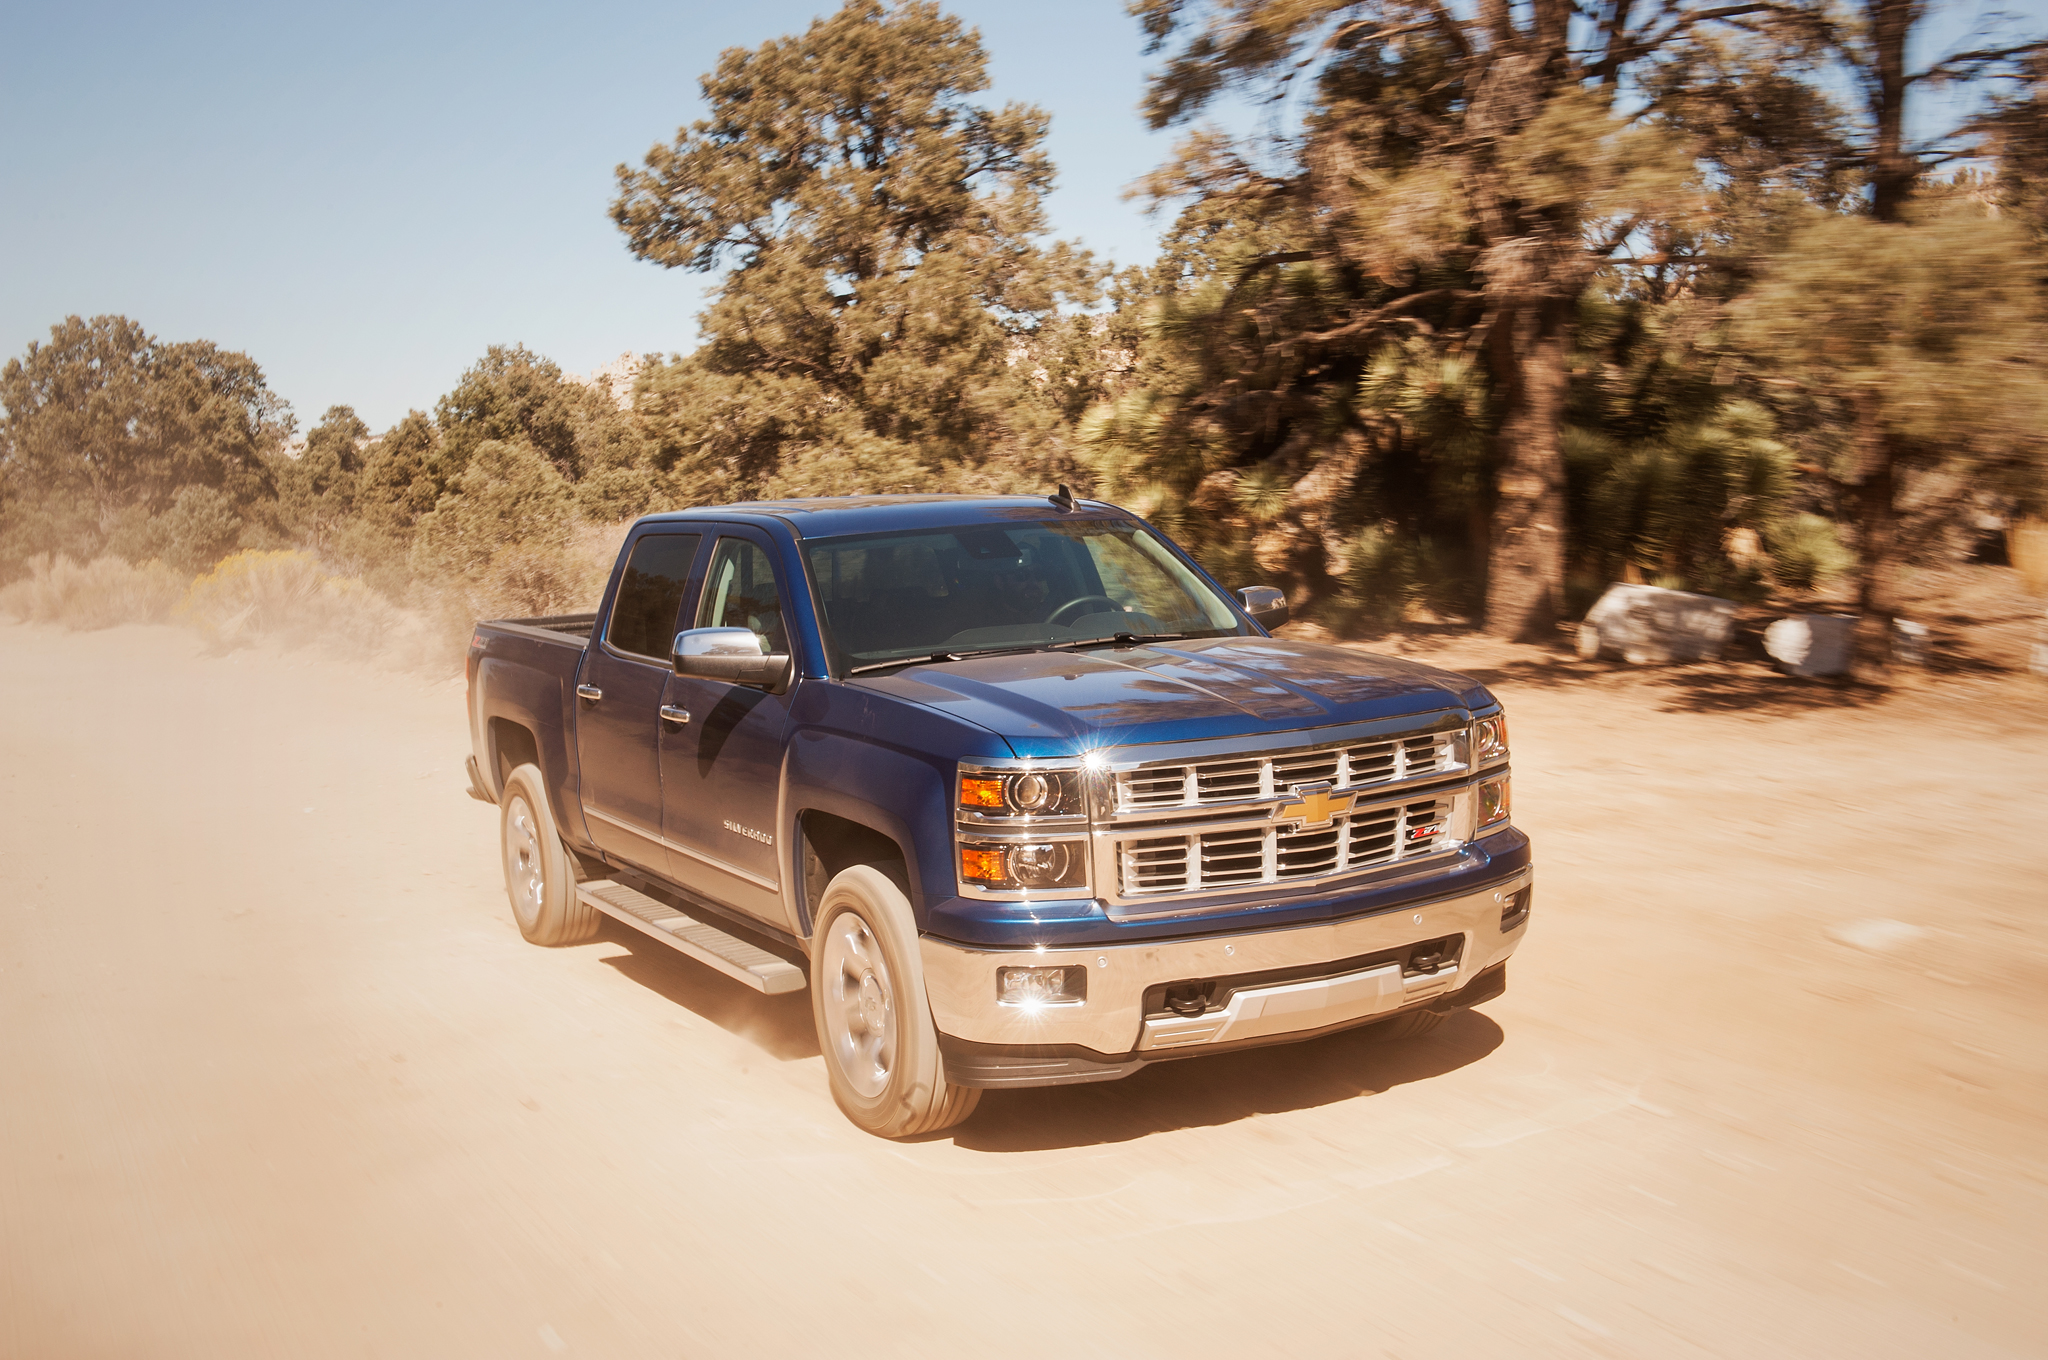 2015 chevrolet silverado 1500 ltz z71 4wd crew cab first test motor trend. Black Bedroom Furniture Sets. Home Design Ideas